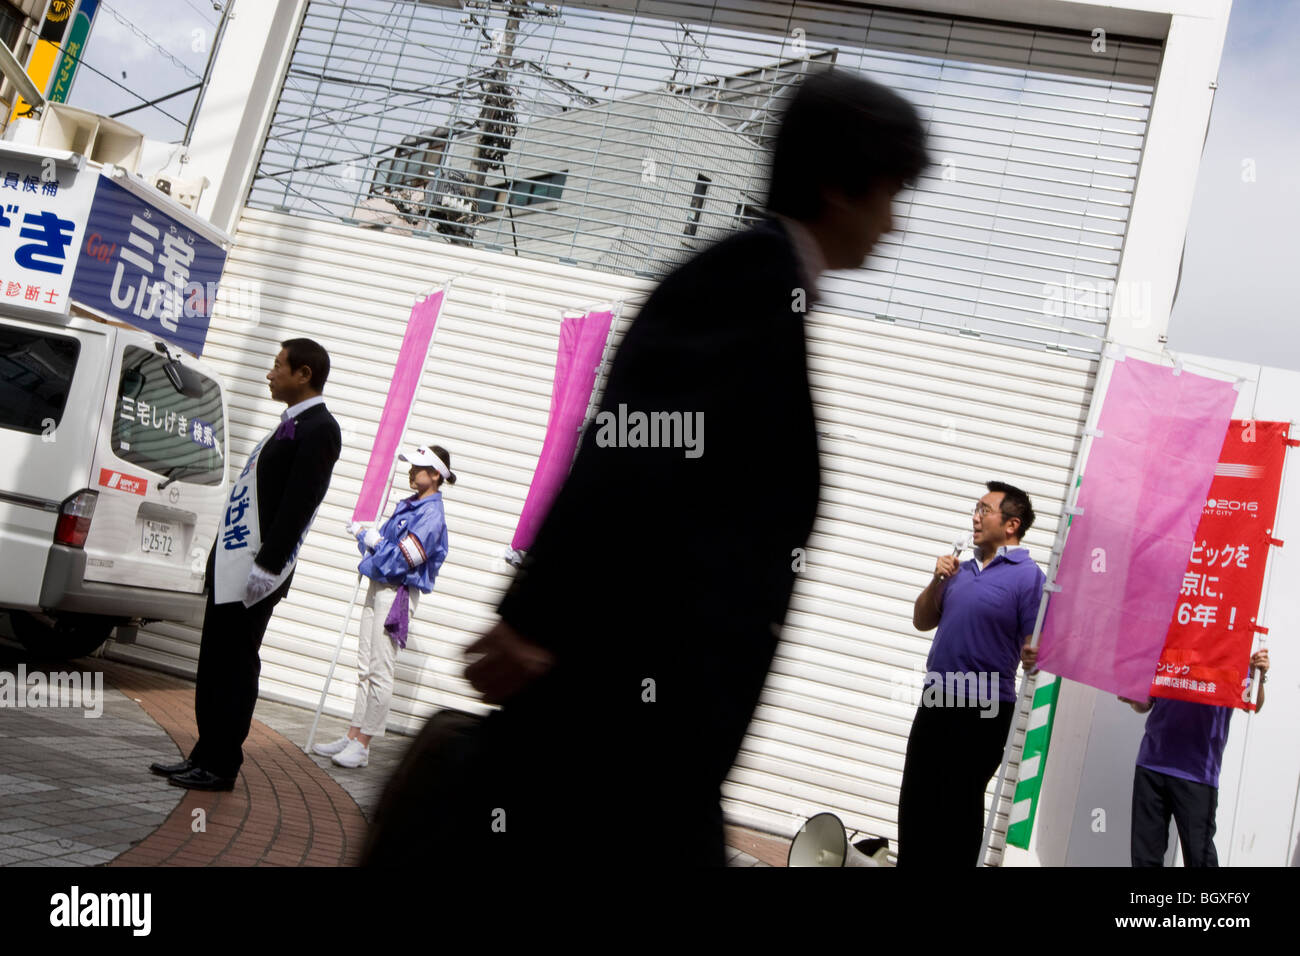 Japanese political campaigning by the Liberal Democratic Party, Tokyo, Japan - Stock Image